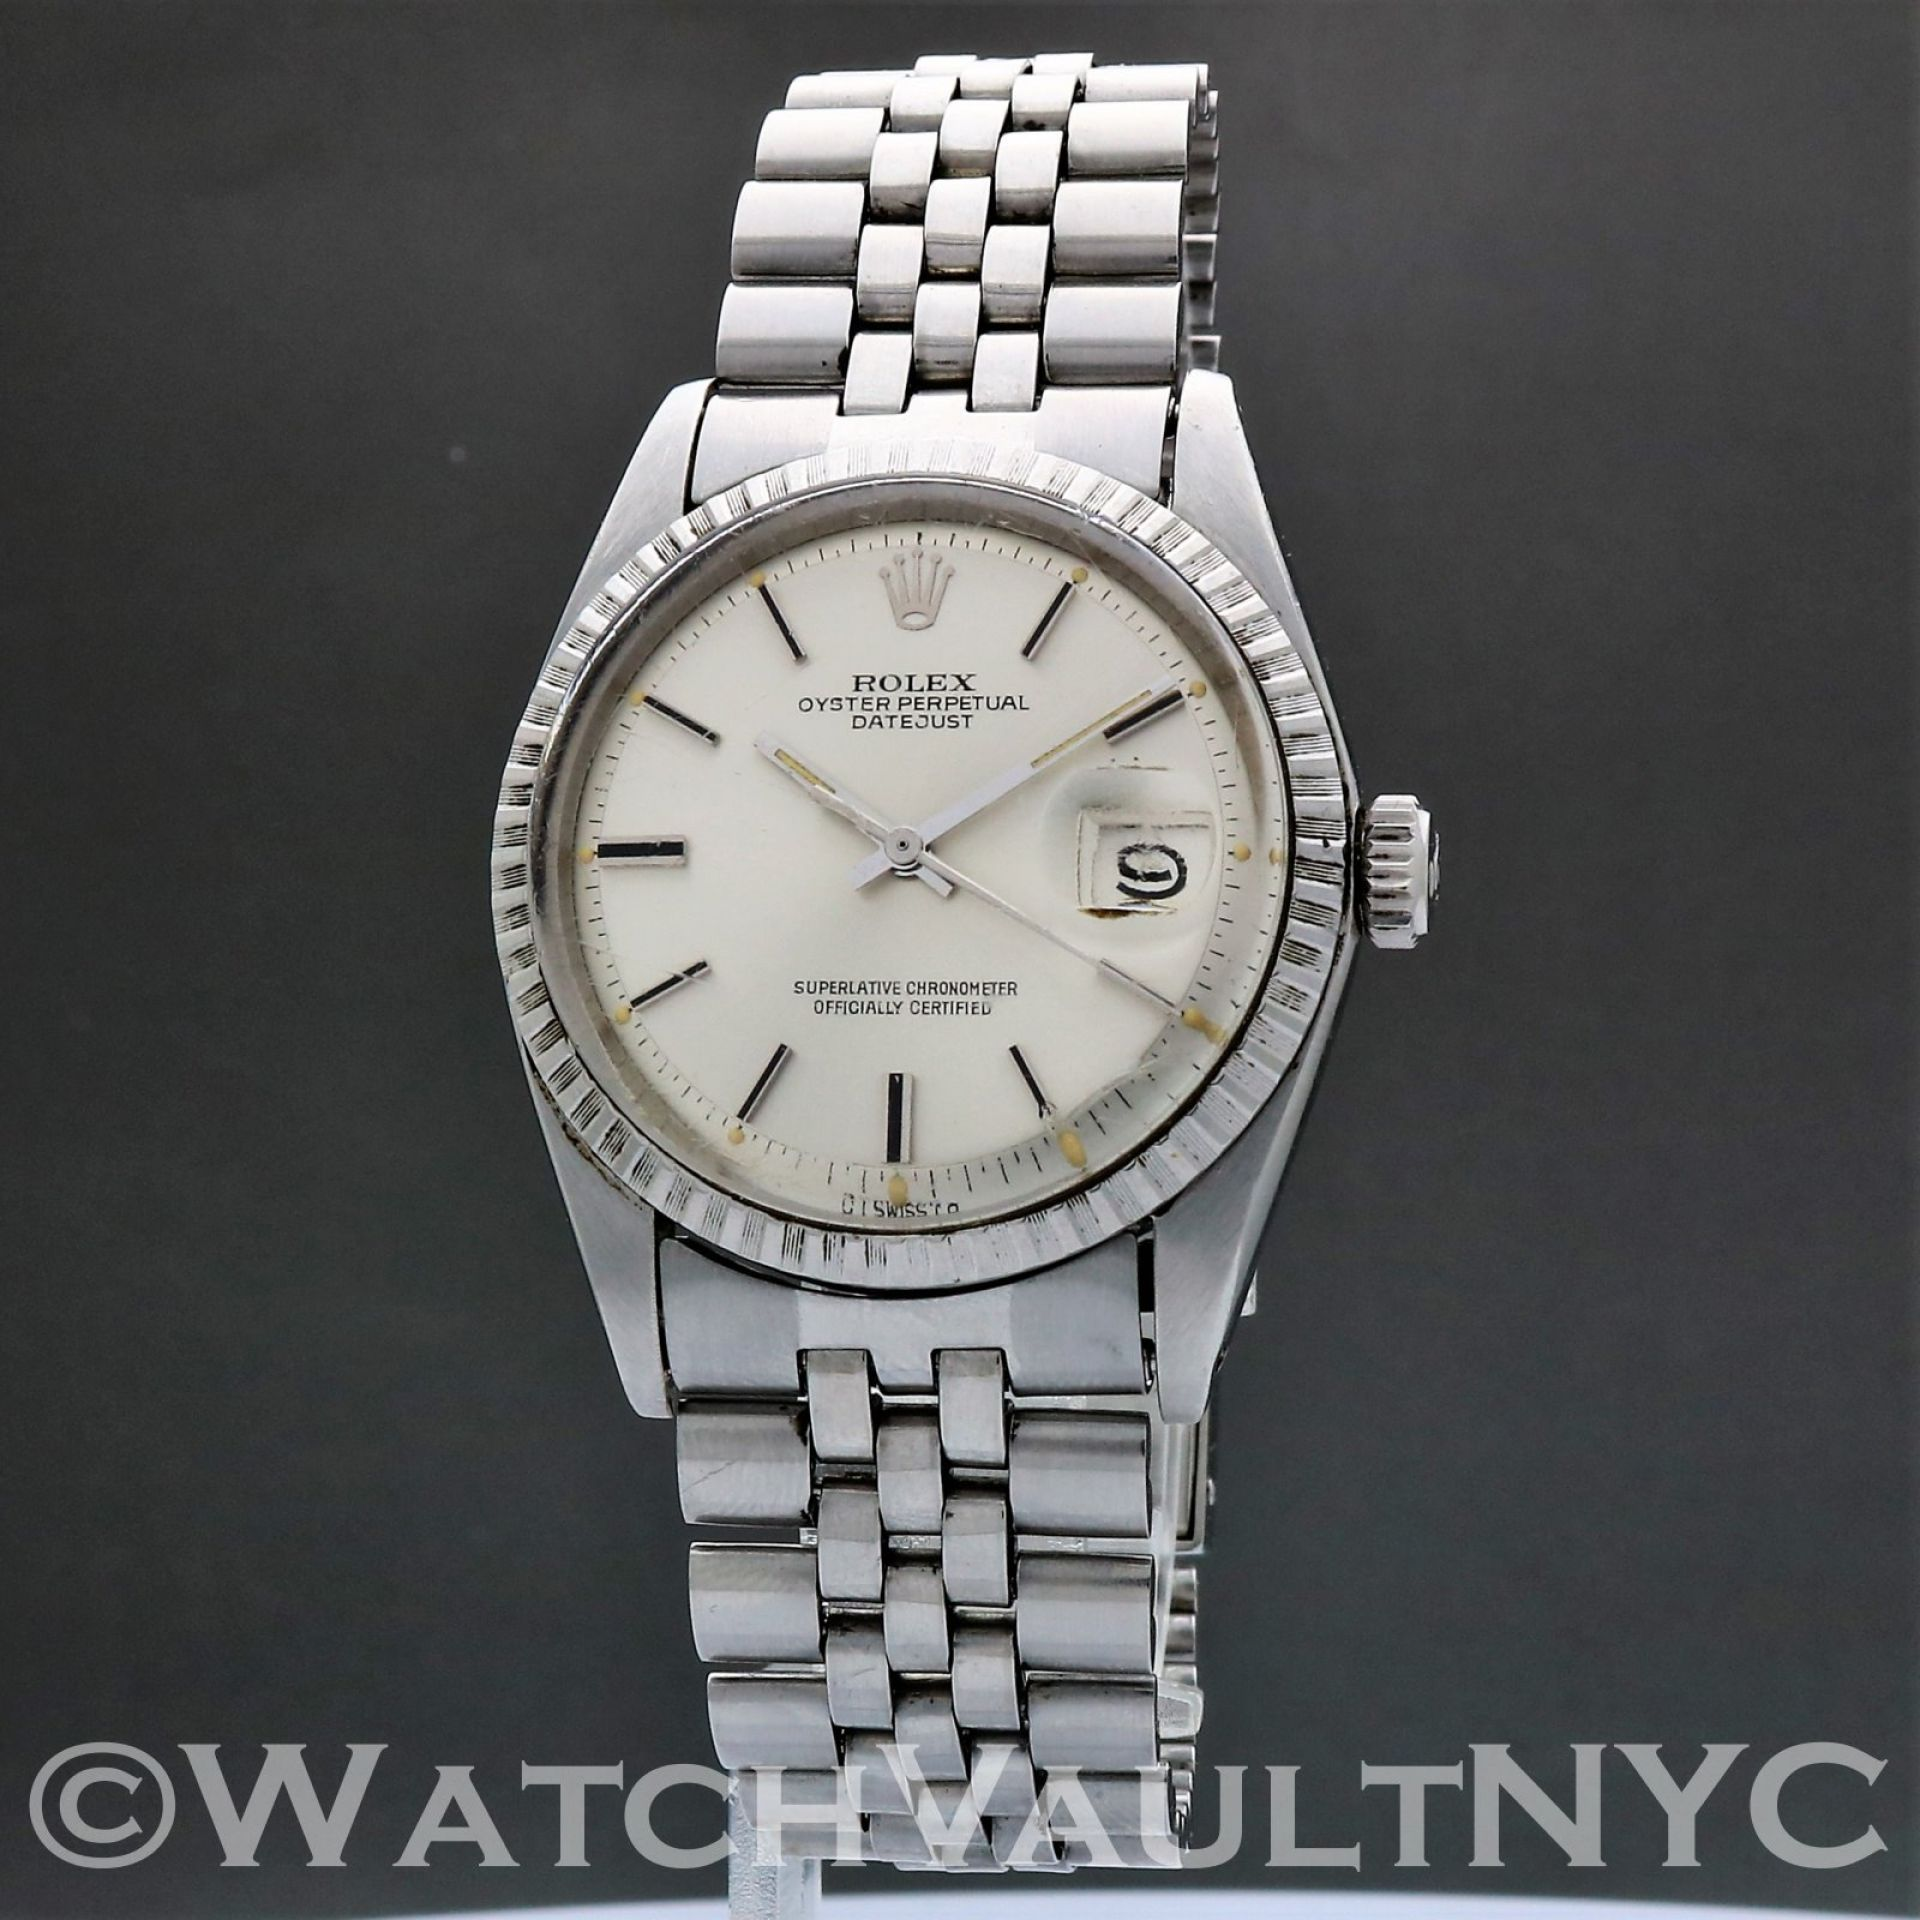 Rolex Oyster Perpetual Datejust 1603 Sigma Dial 1974 Vintage 36mm Auto RL306